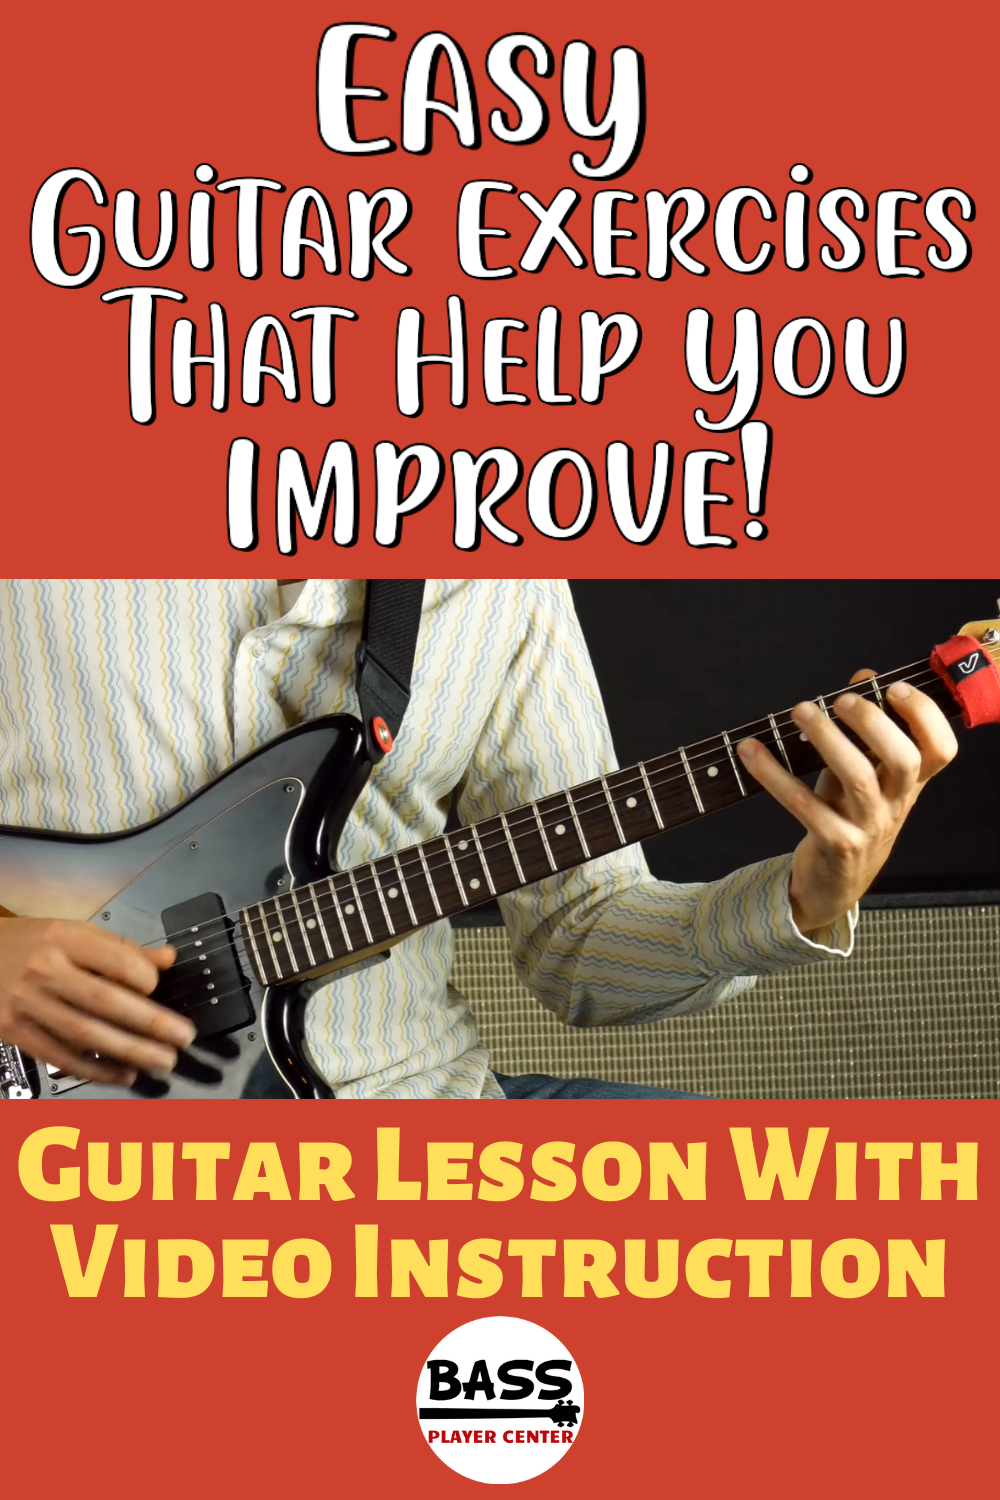 Easy Guitar Exercises That Help You Improve